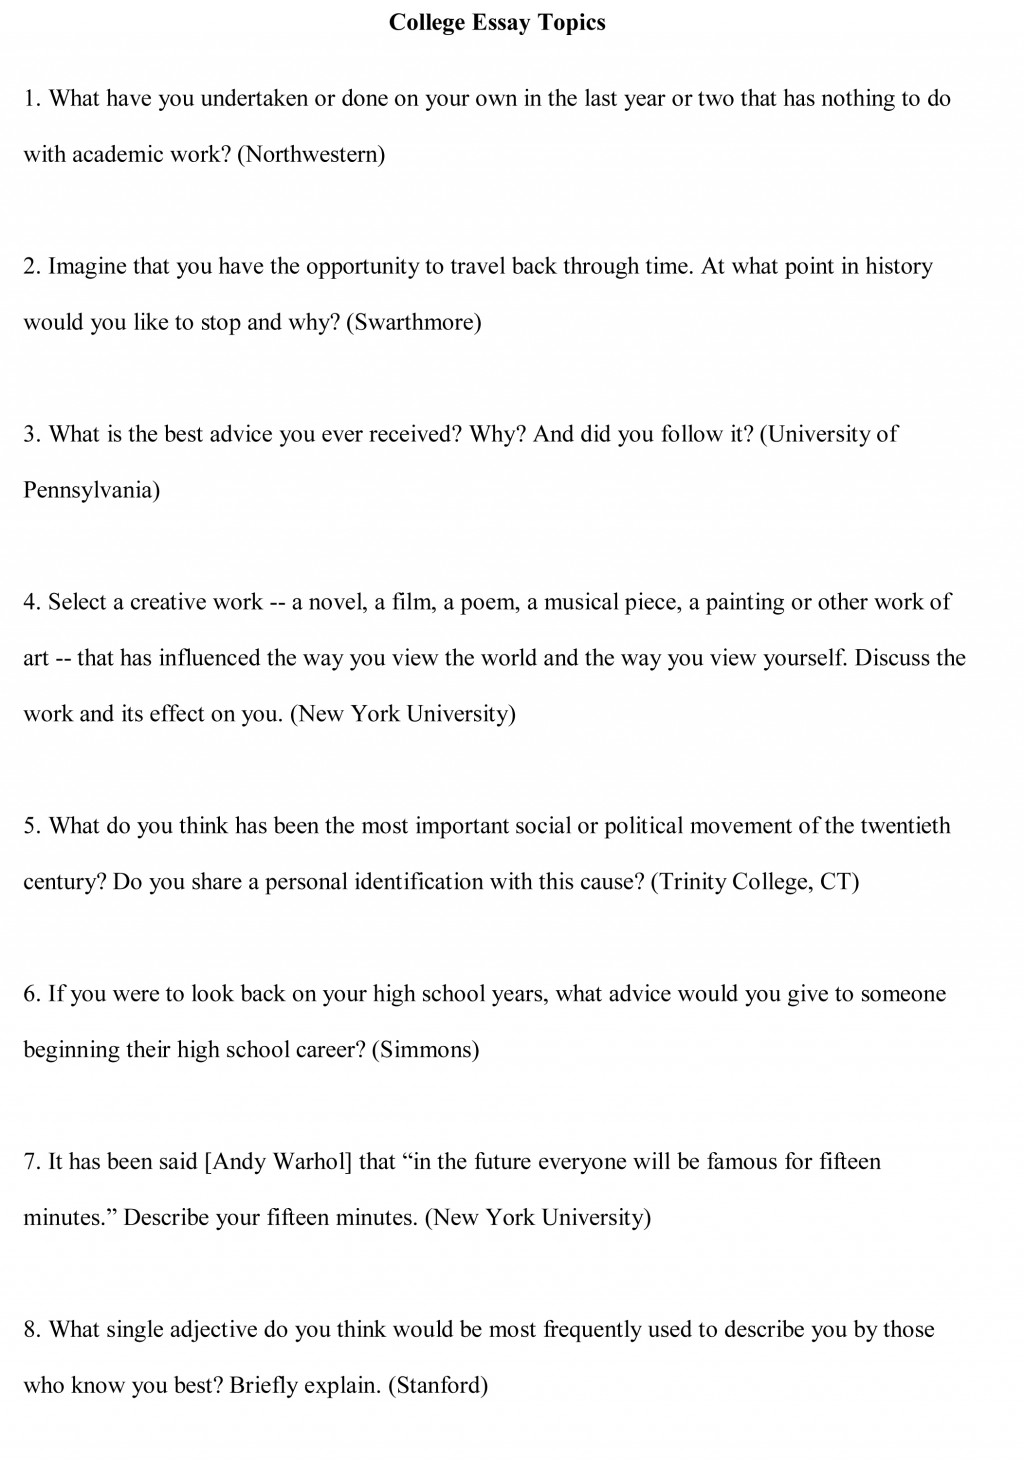 014 Essay Topics College Free Sample1 Archaicawful For High School English Kids Grade 8 Pdf Large